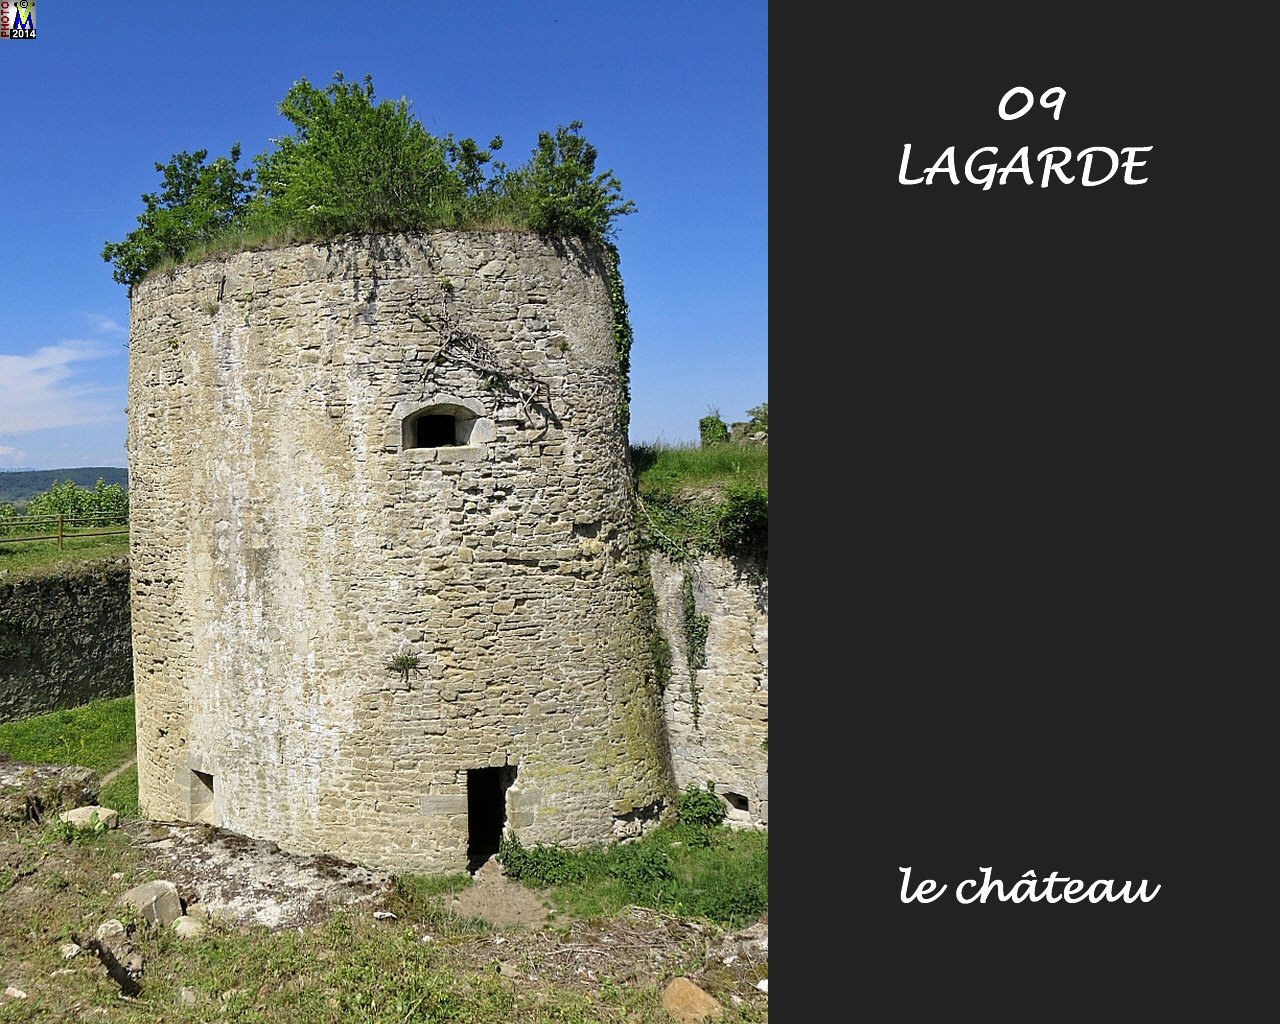 09LAGARDE_chateau_124.jpg